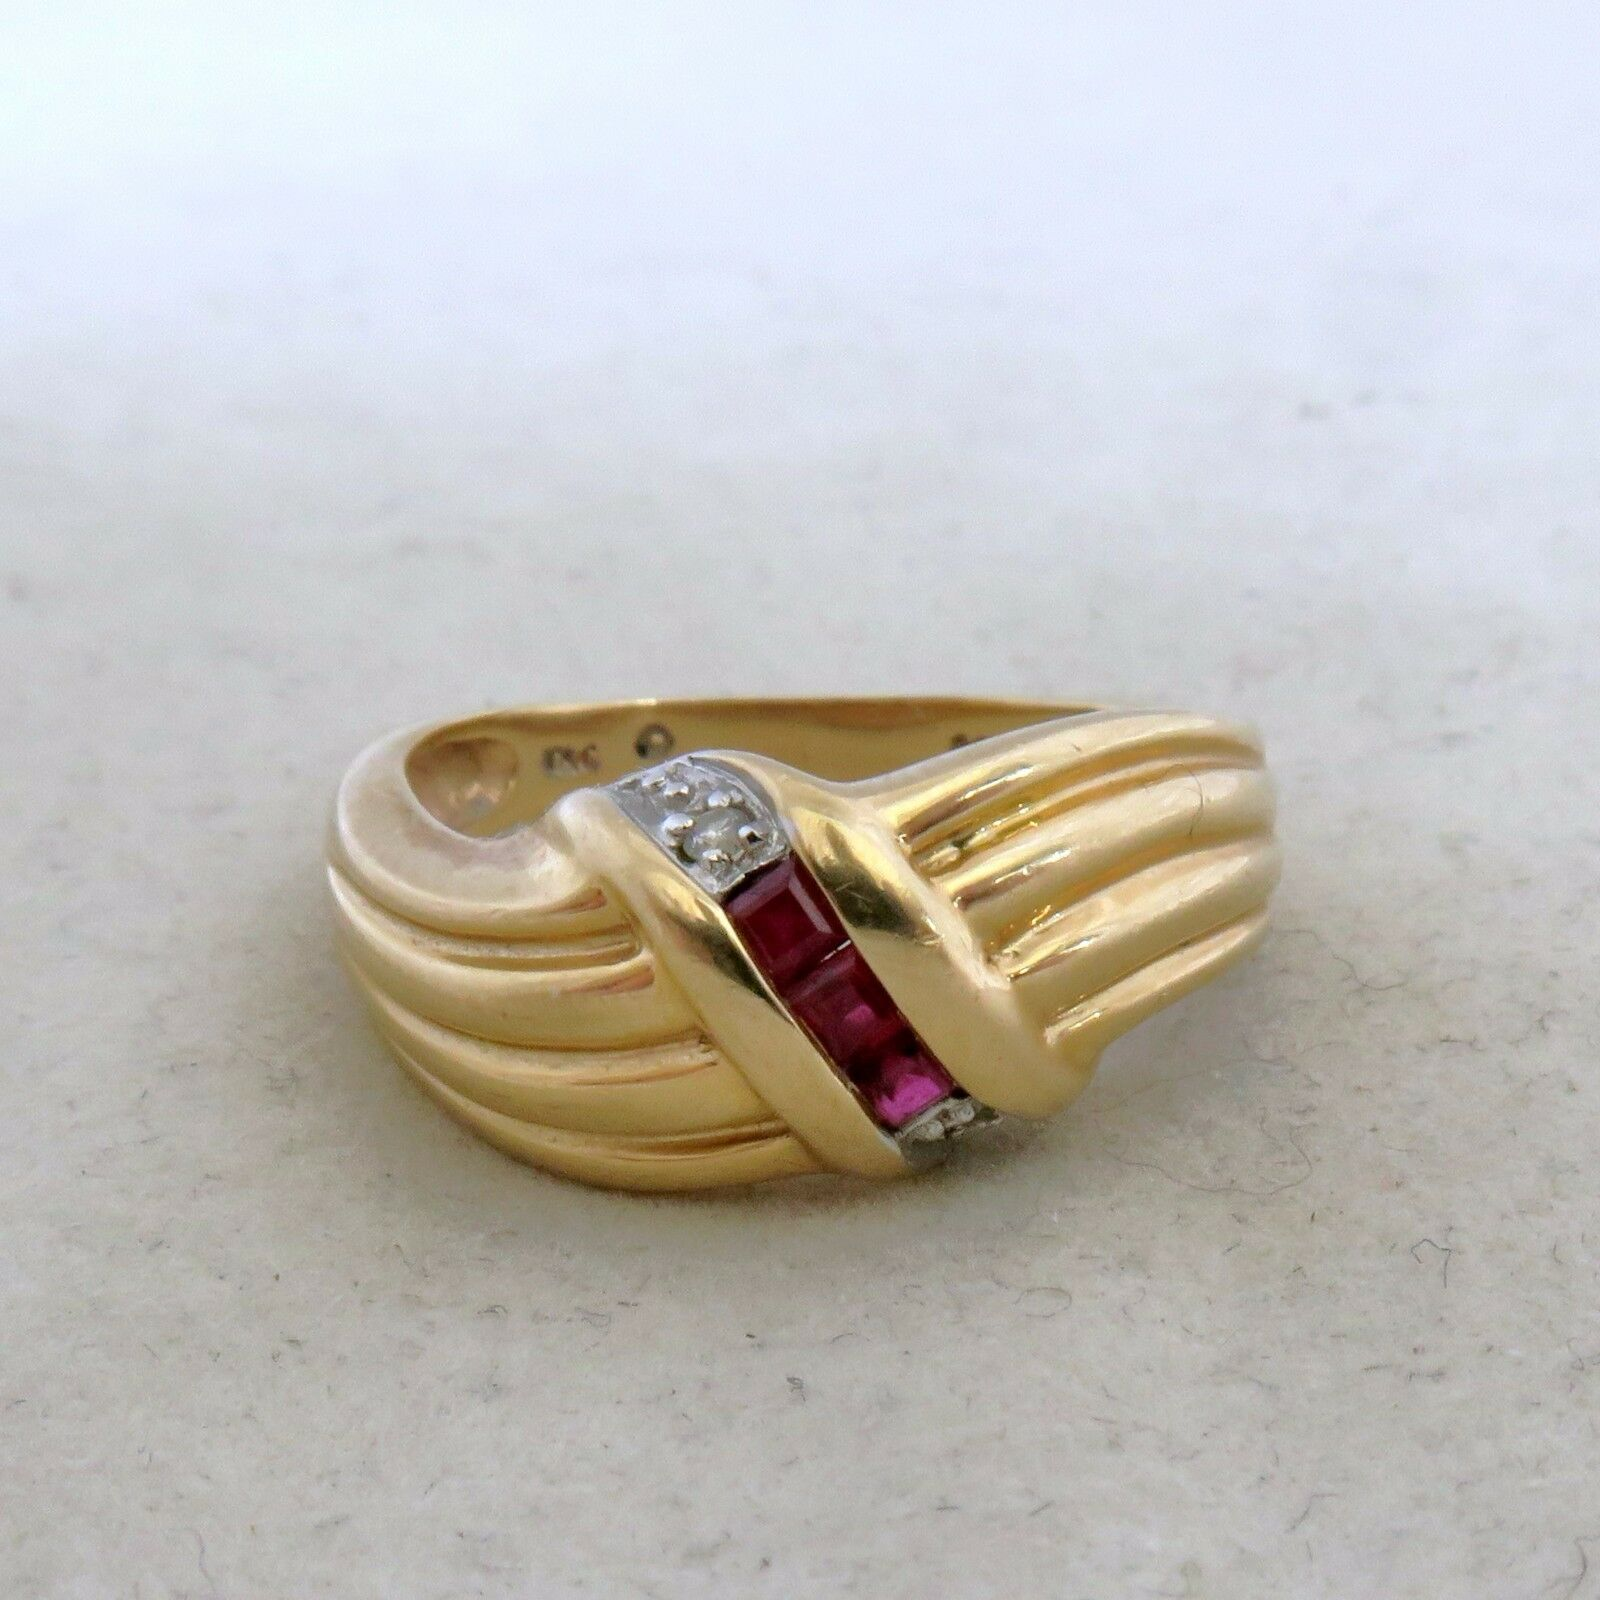 14K Yellow gold Ruby Ring with 3 Rubies & 2 Diamonds  (4.8 grams, size 7.25)